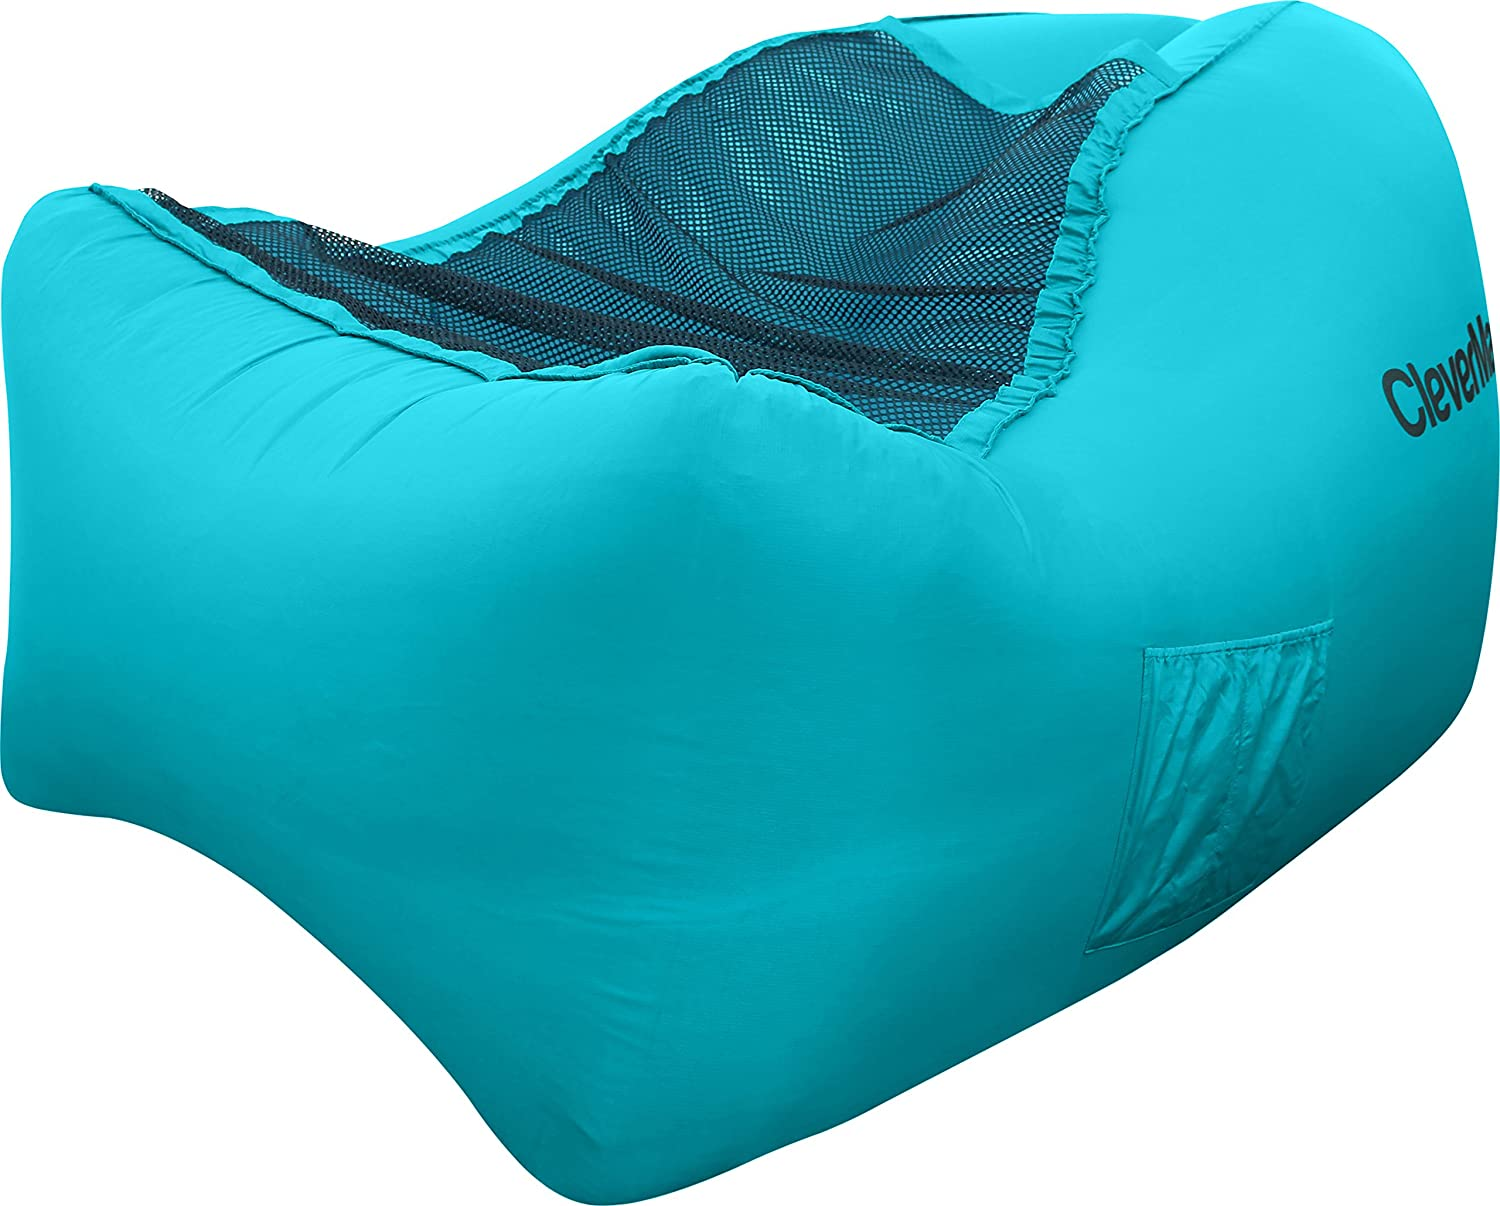 CleverMade Inflatable Lounger Air Chair: Lightweight Recliner Style AirChair, Portable Outdoor Beach Chair with Carry Bag, Ground Stakes, and Storage Pockets, Teal